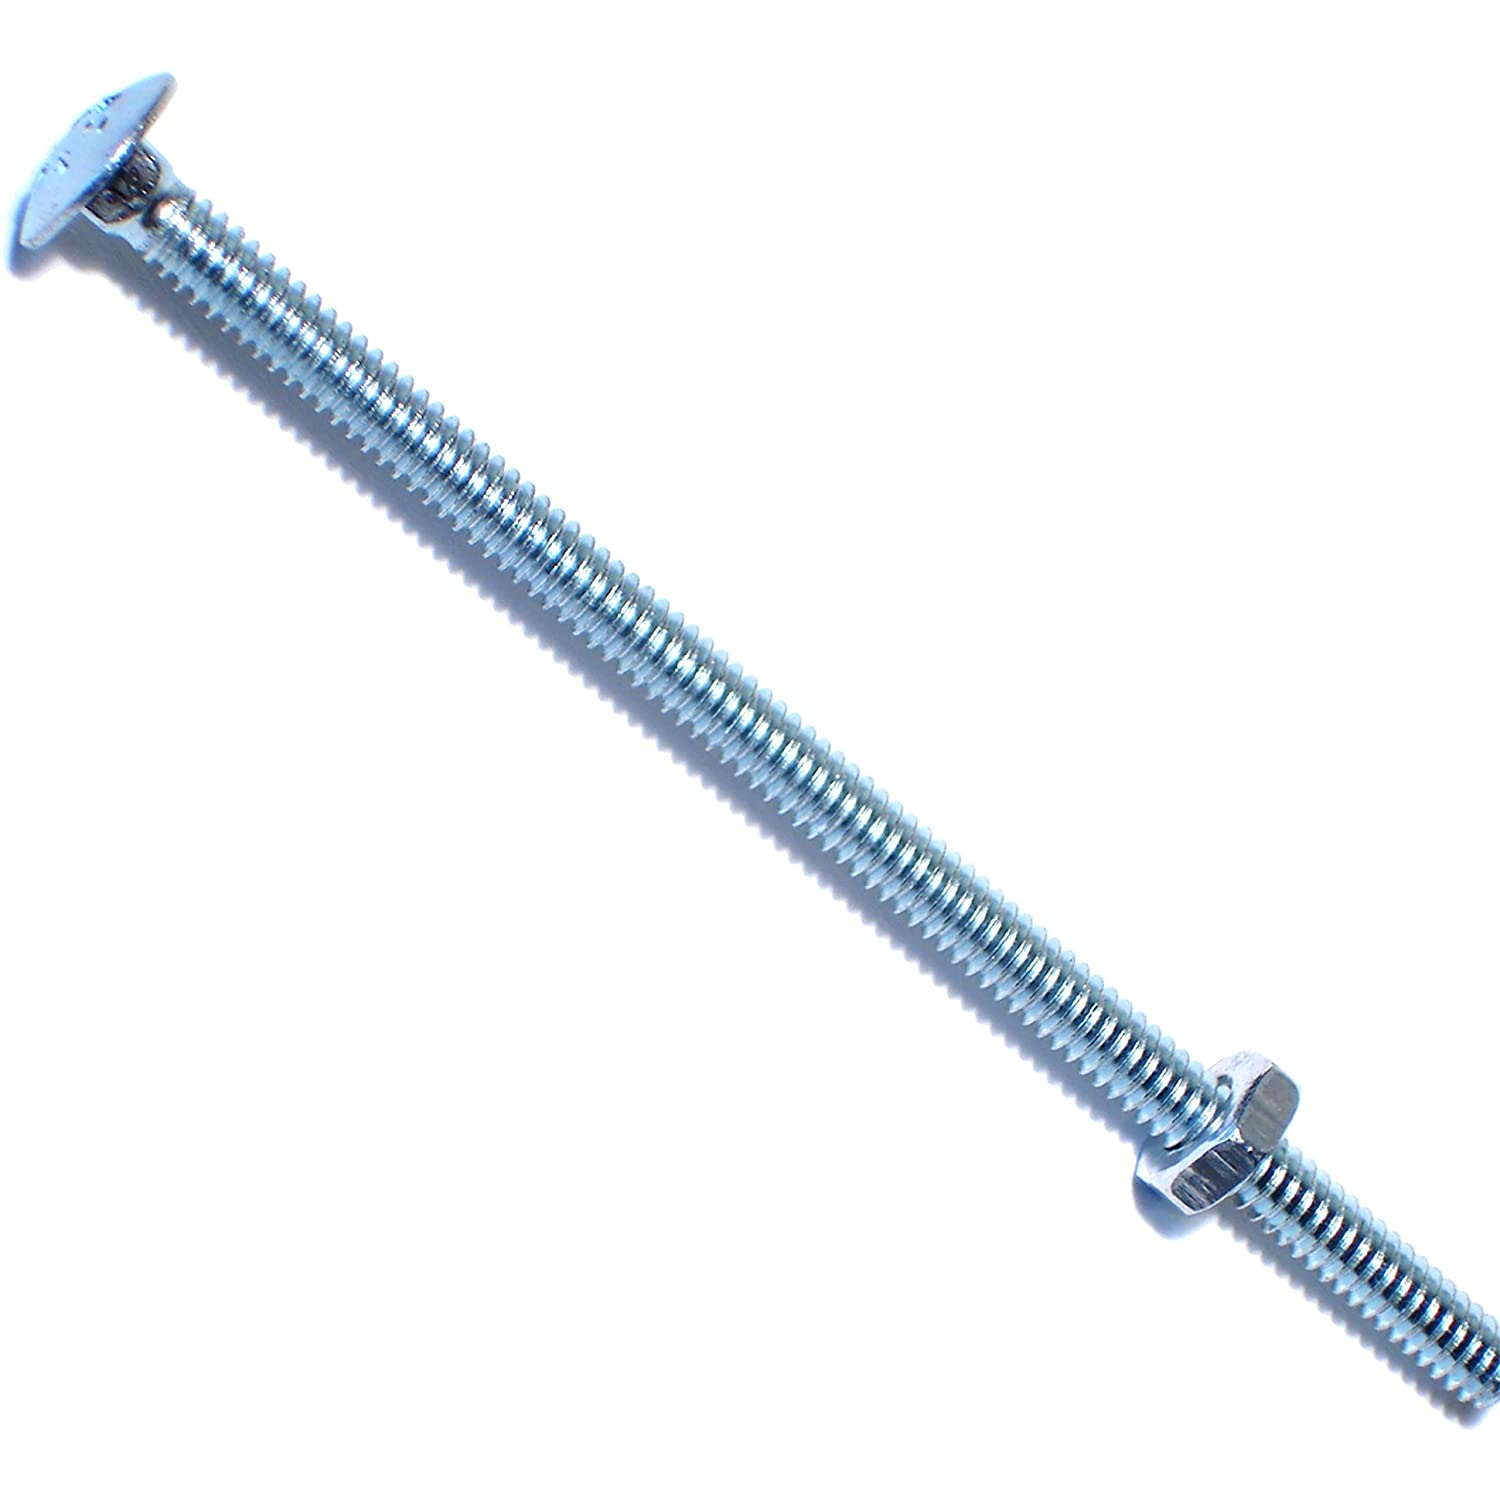 Piece-25 Hard-to-Find Fastener 014973230388 Carriage Bolts 10-24 x 4